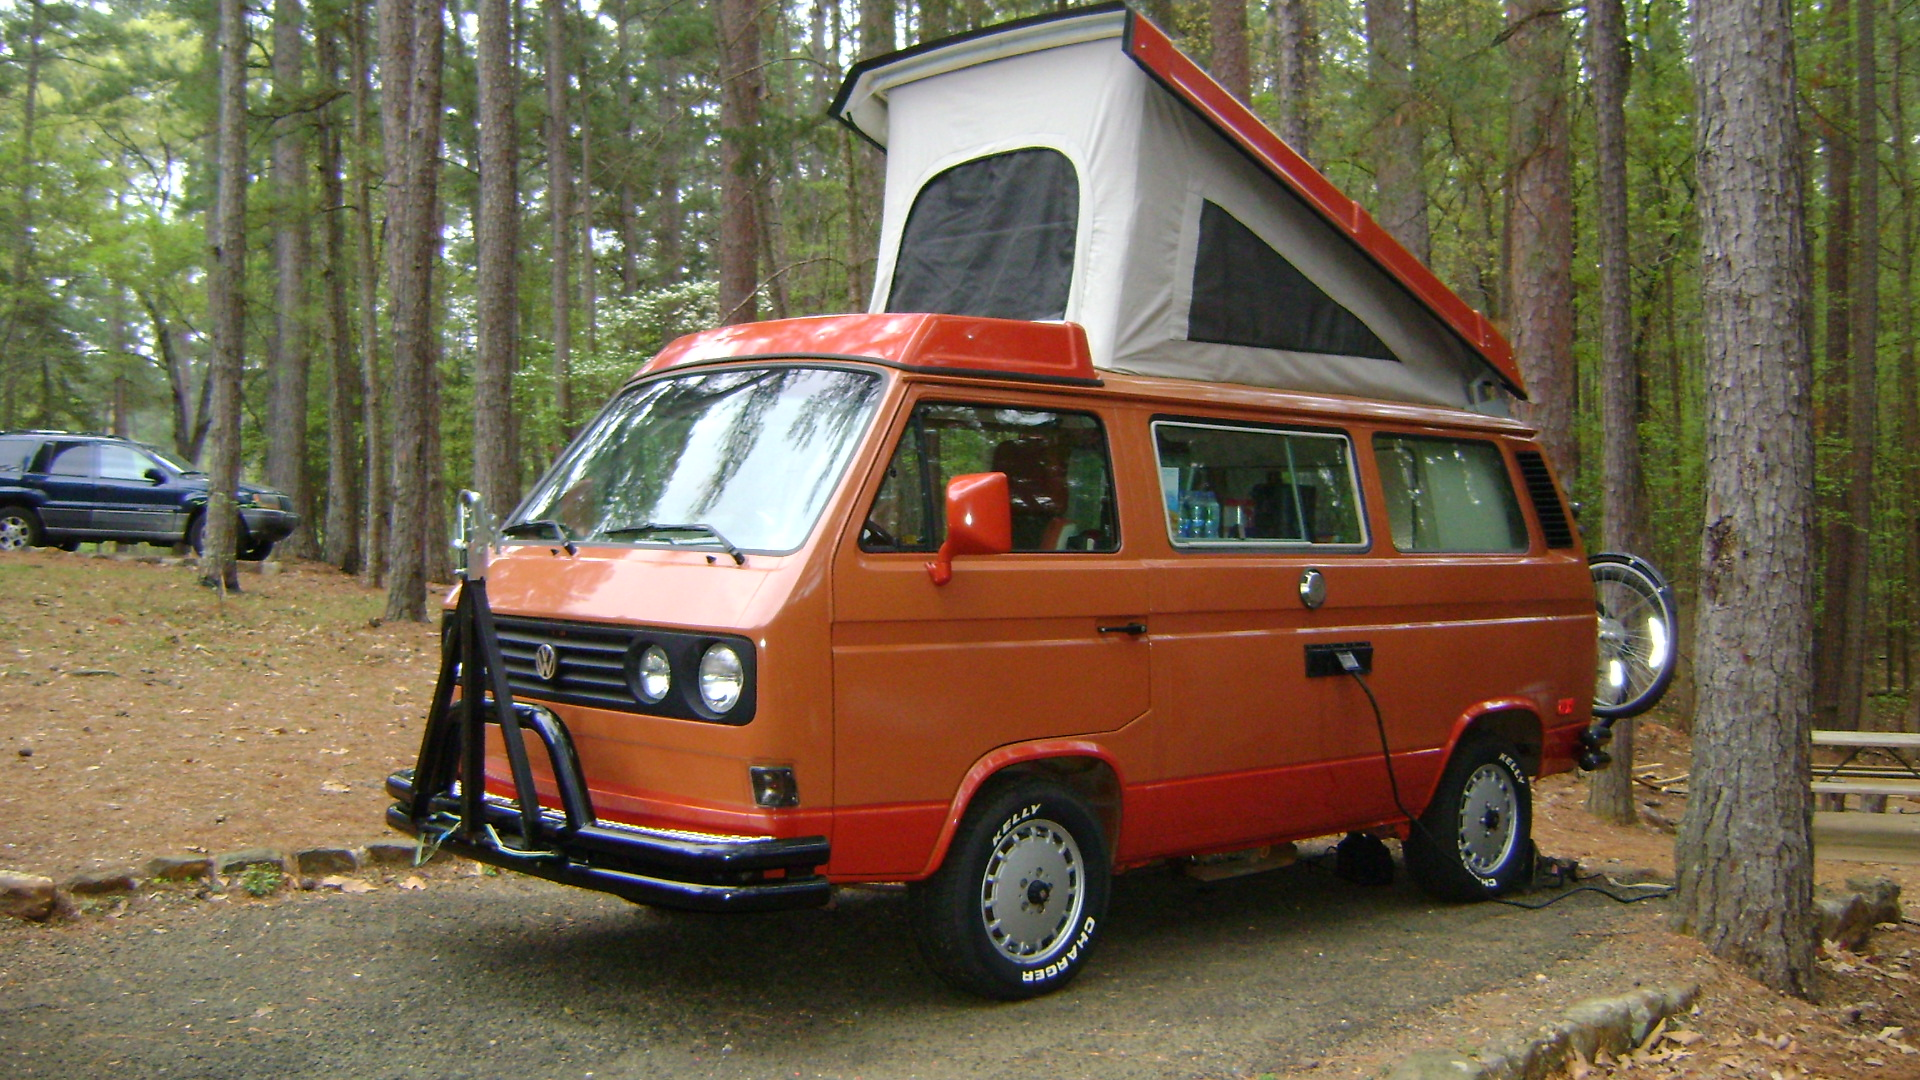 Salient You Must Be Registered To Volkswagen Vanagon Readers Vw Eurovan Camper Specs Vw Eurovan Camper Parts Signed curbed Vw Eurovan Camper